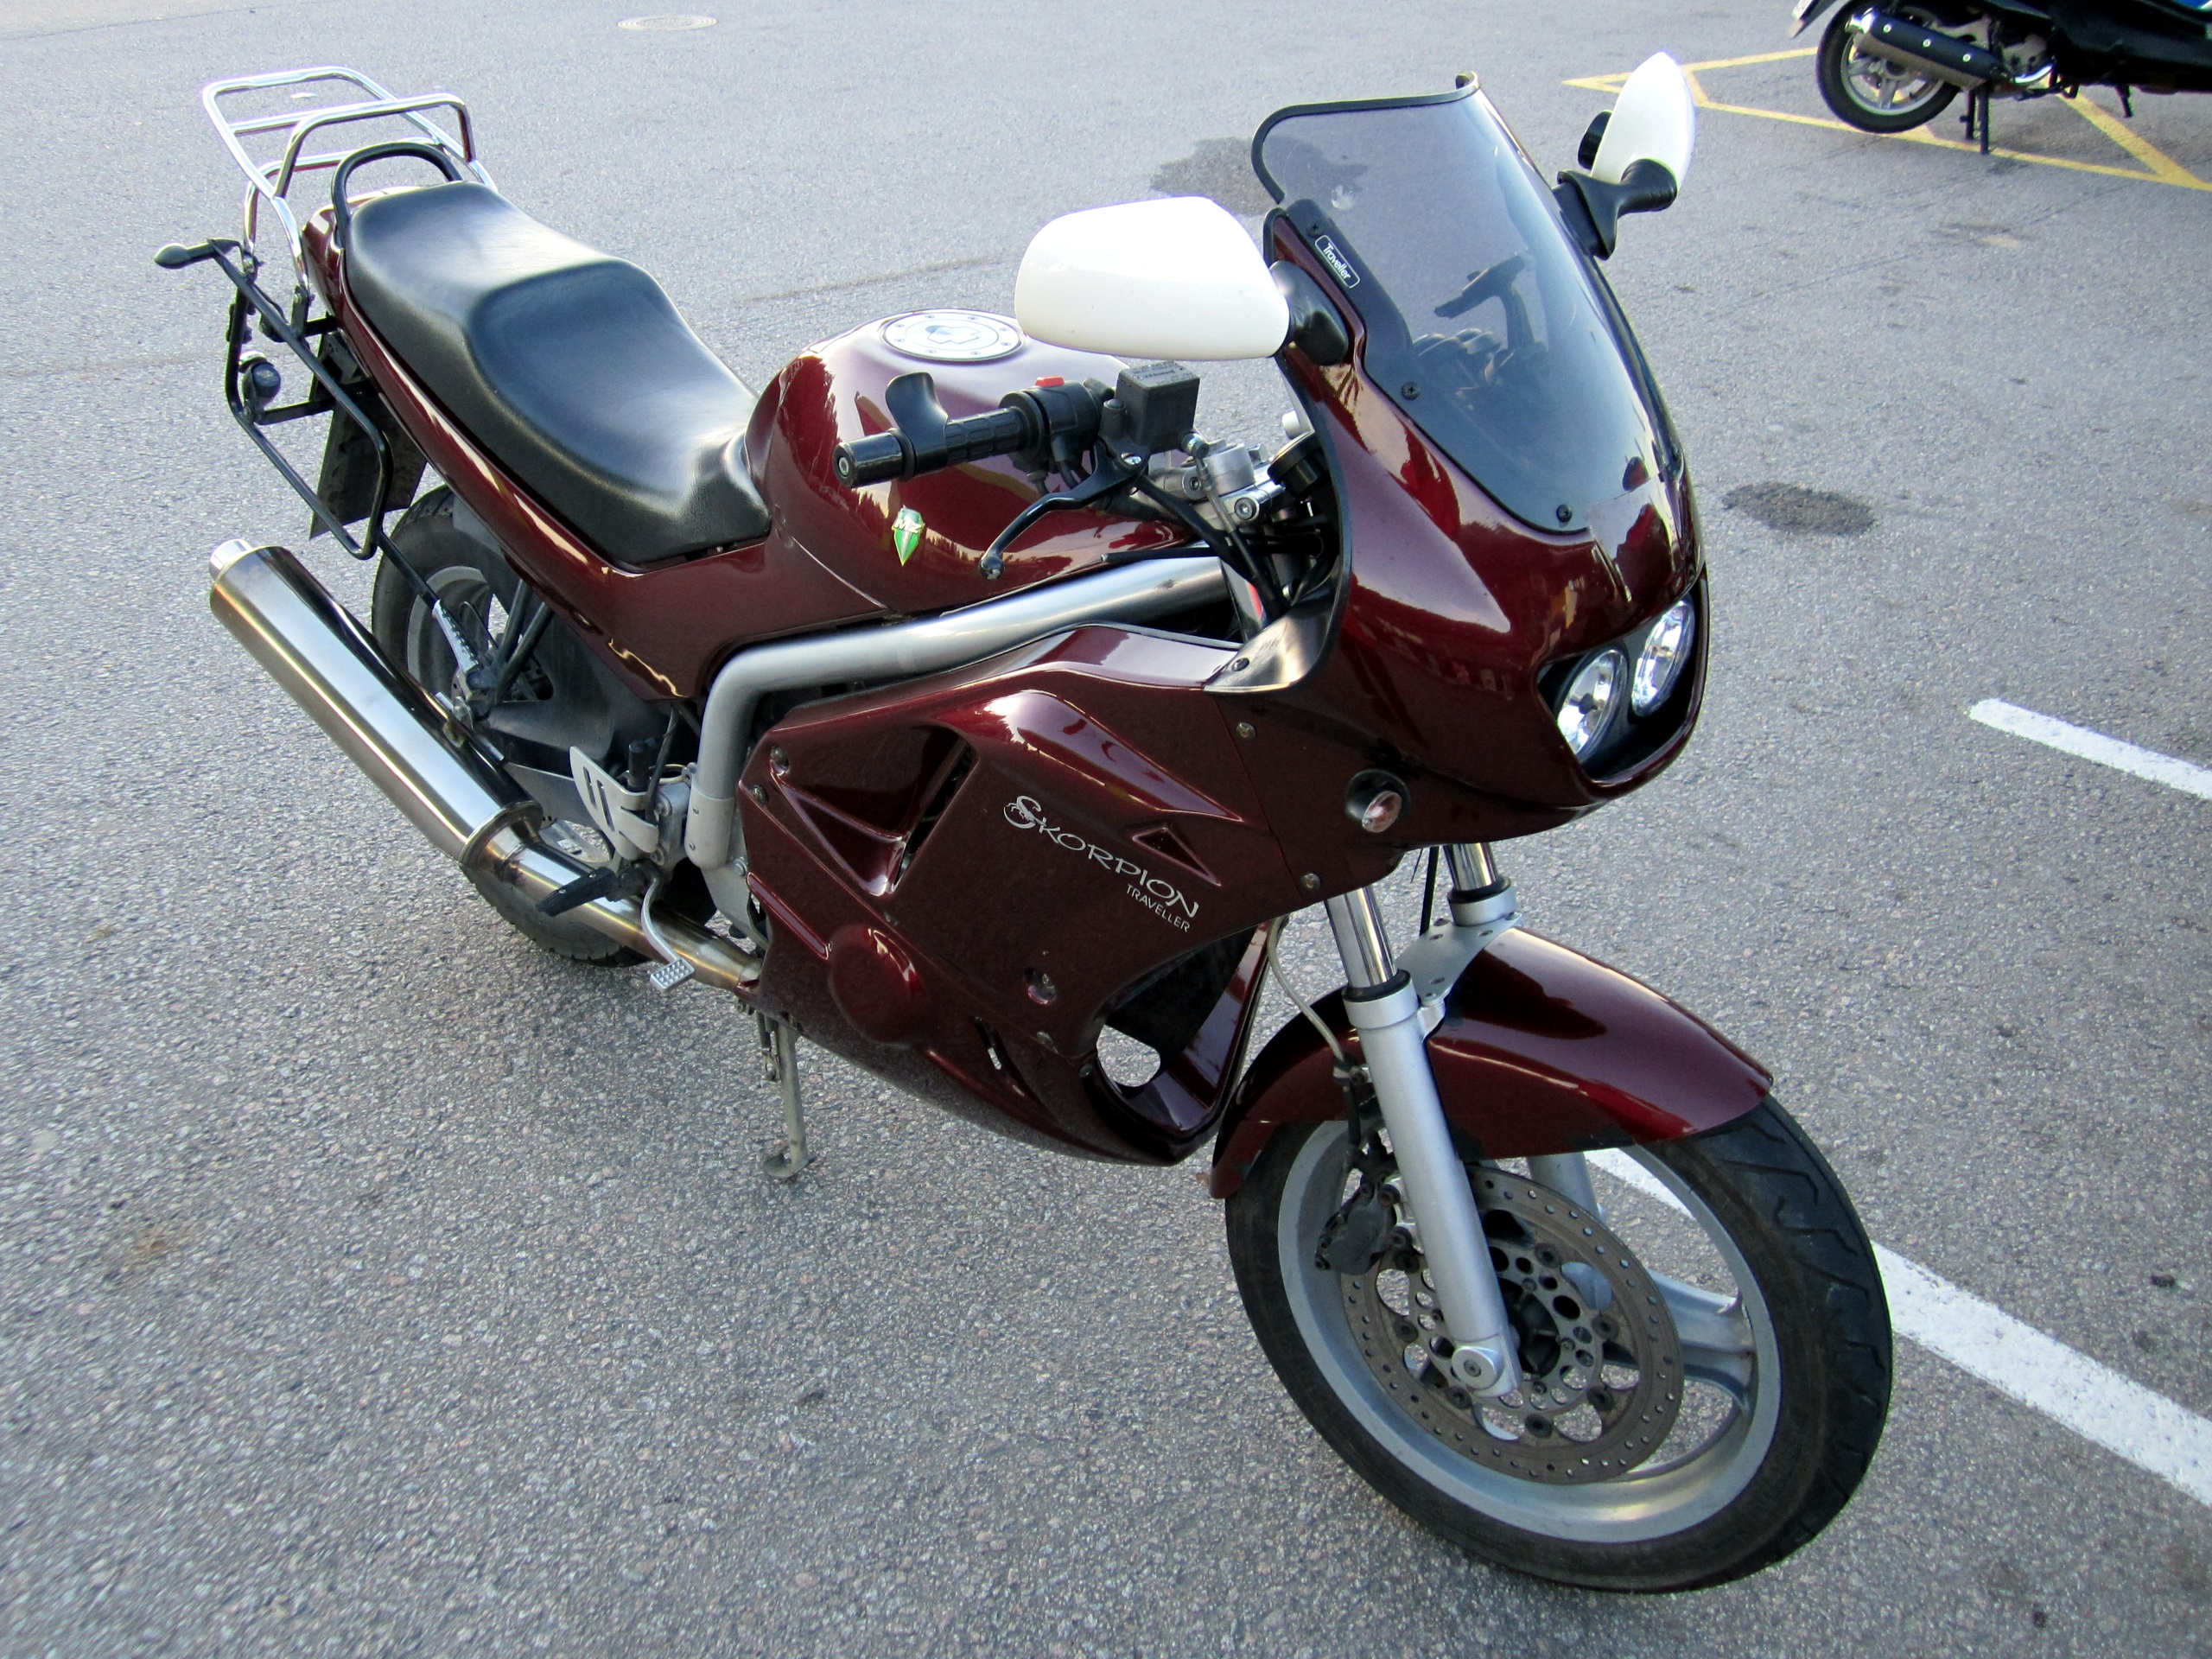 MZ Skorpion 660 Sport 2003 images #116736